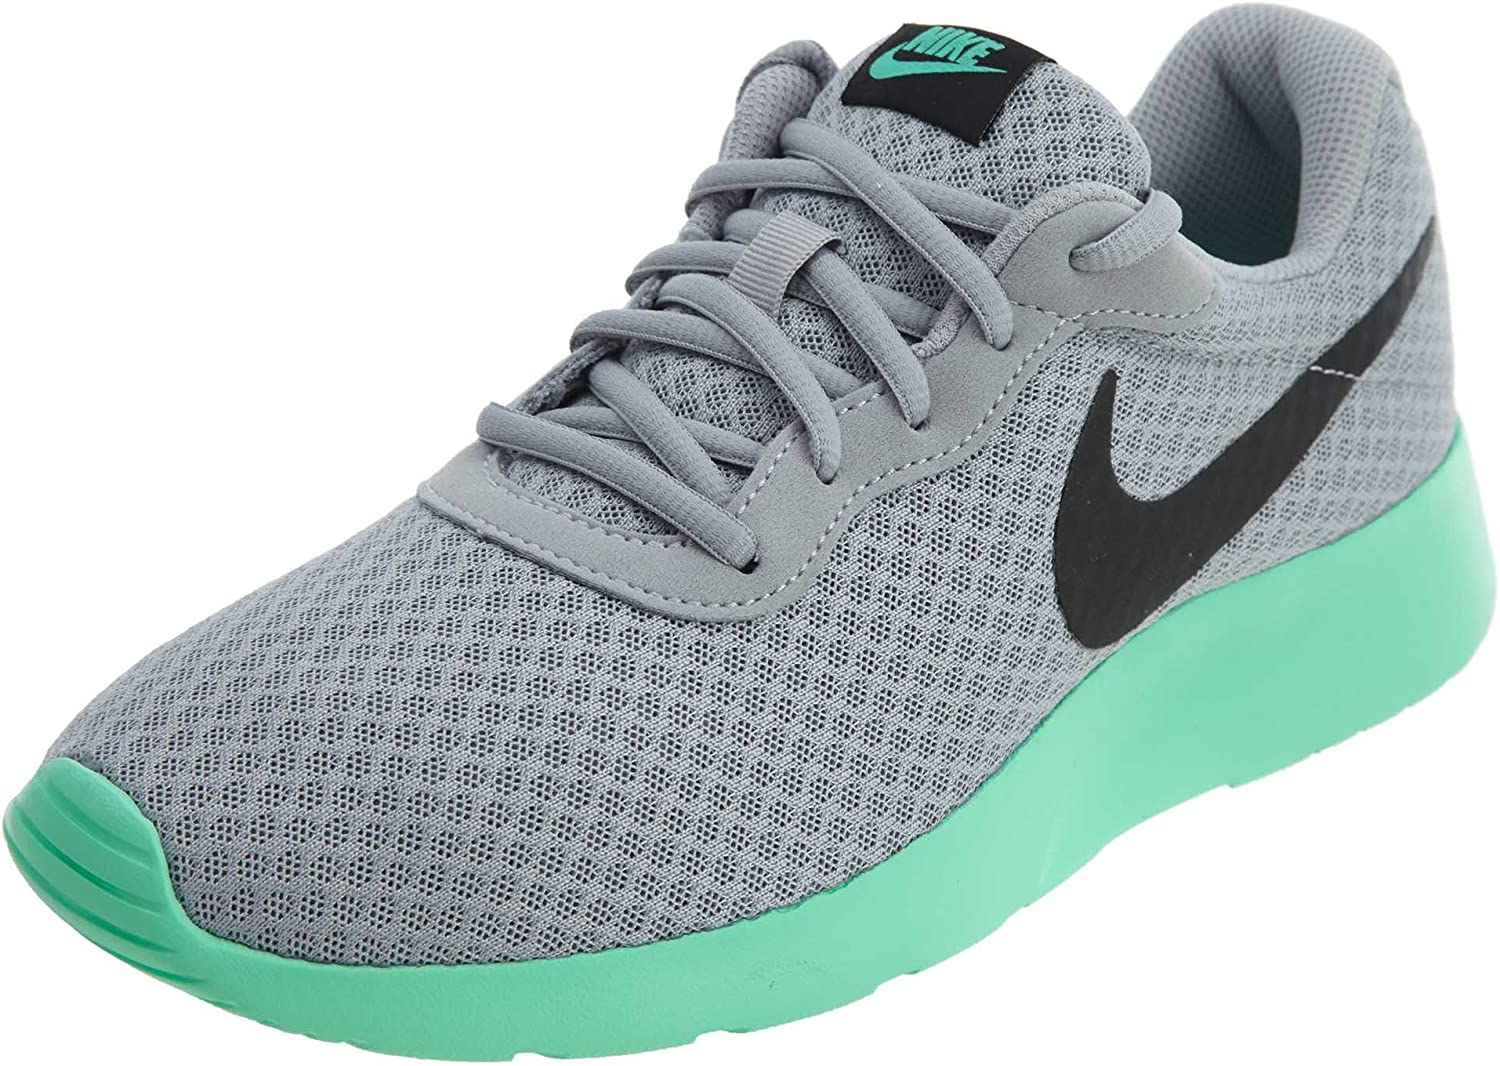 Nike Men's's 812654-003 Fitness shoes